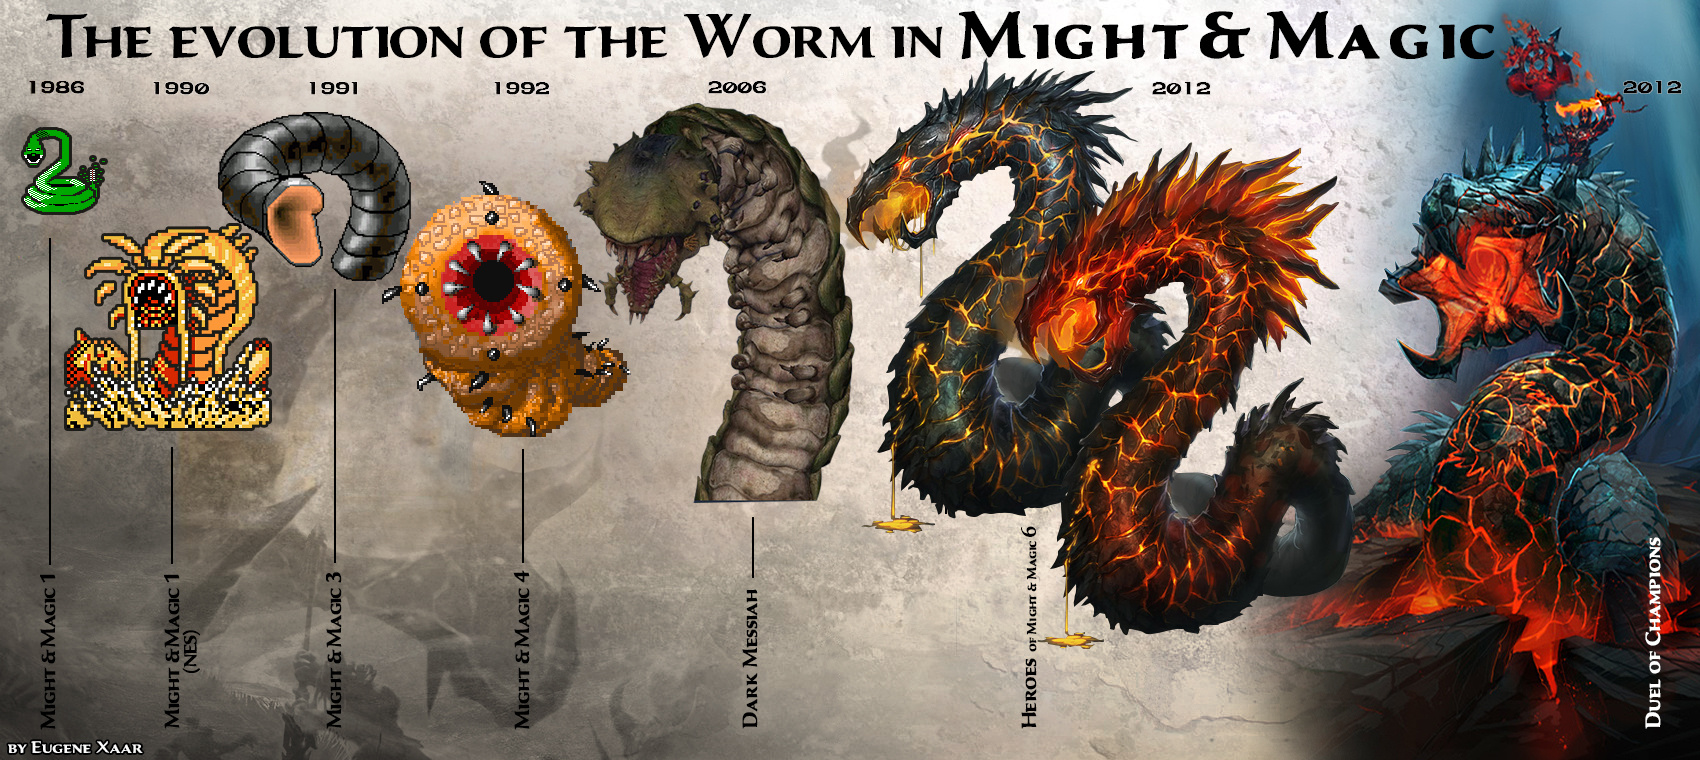 http://heroes.net.pl/uploaded/news-calendar/2020/worm-evolution.jpg